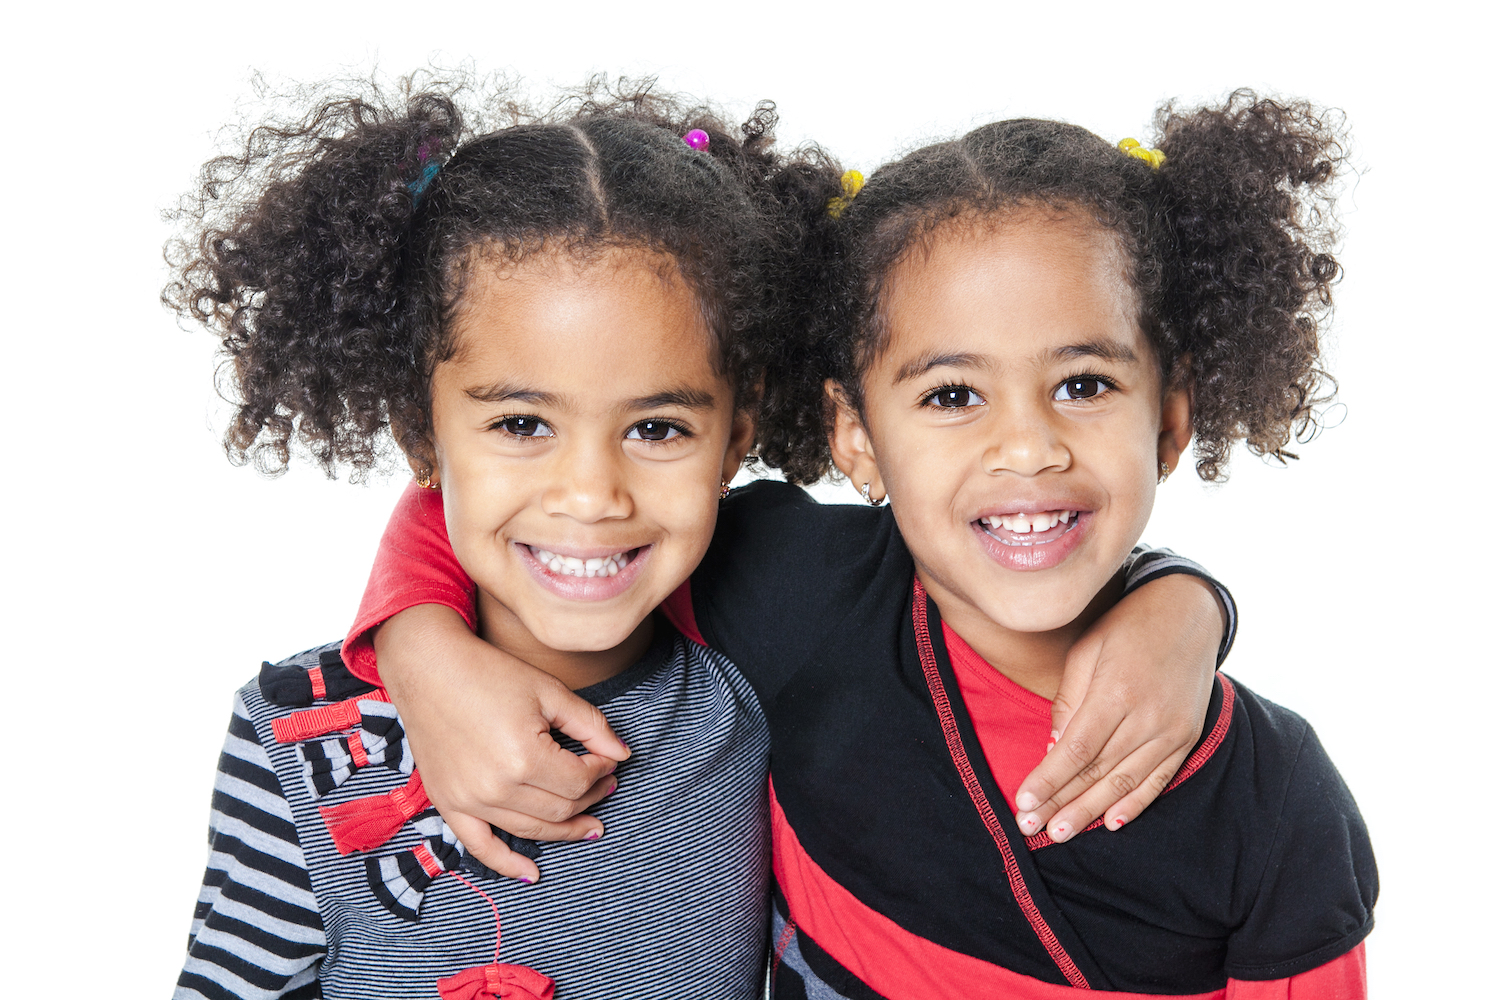 A new study from Baylor College of Medicine has revealed that twins have more corresponding traits than what was previously realized.